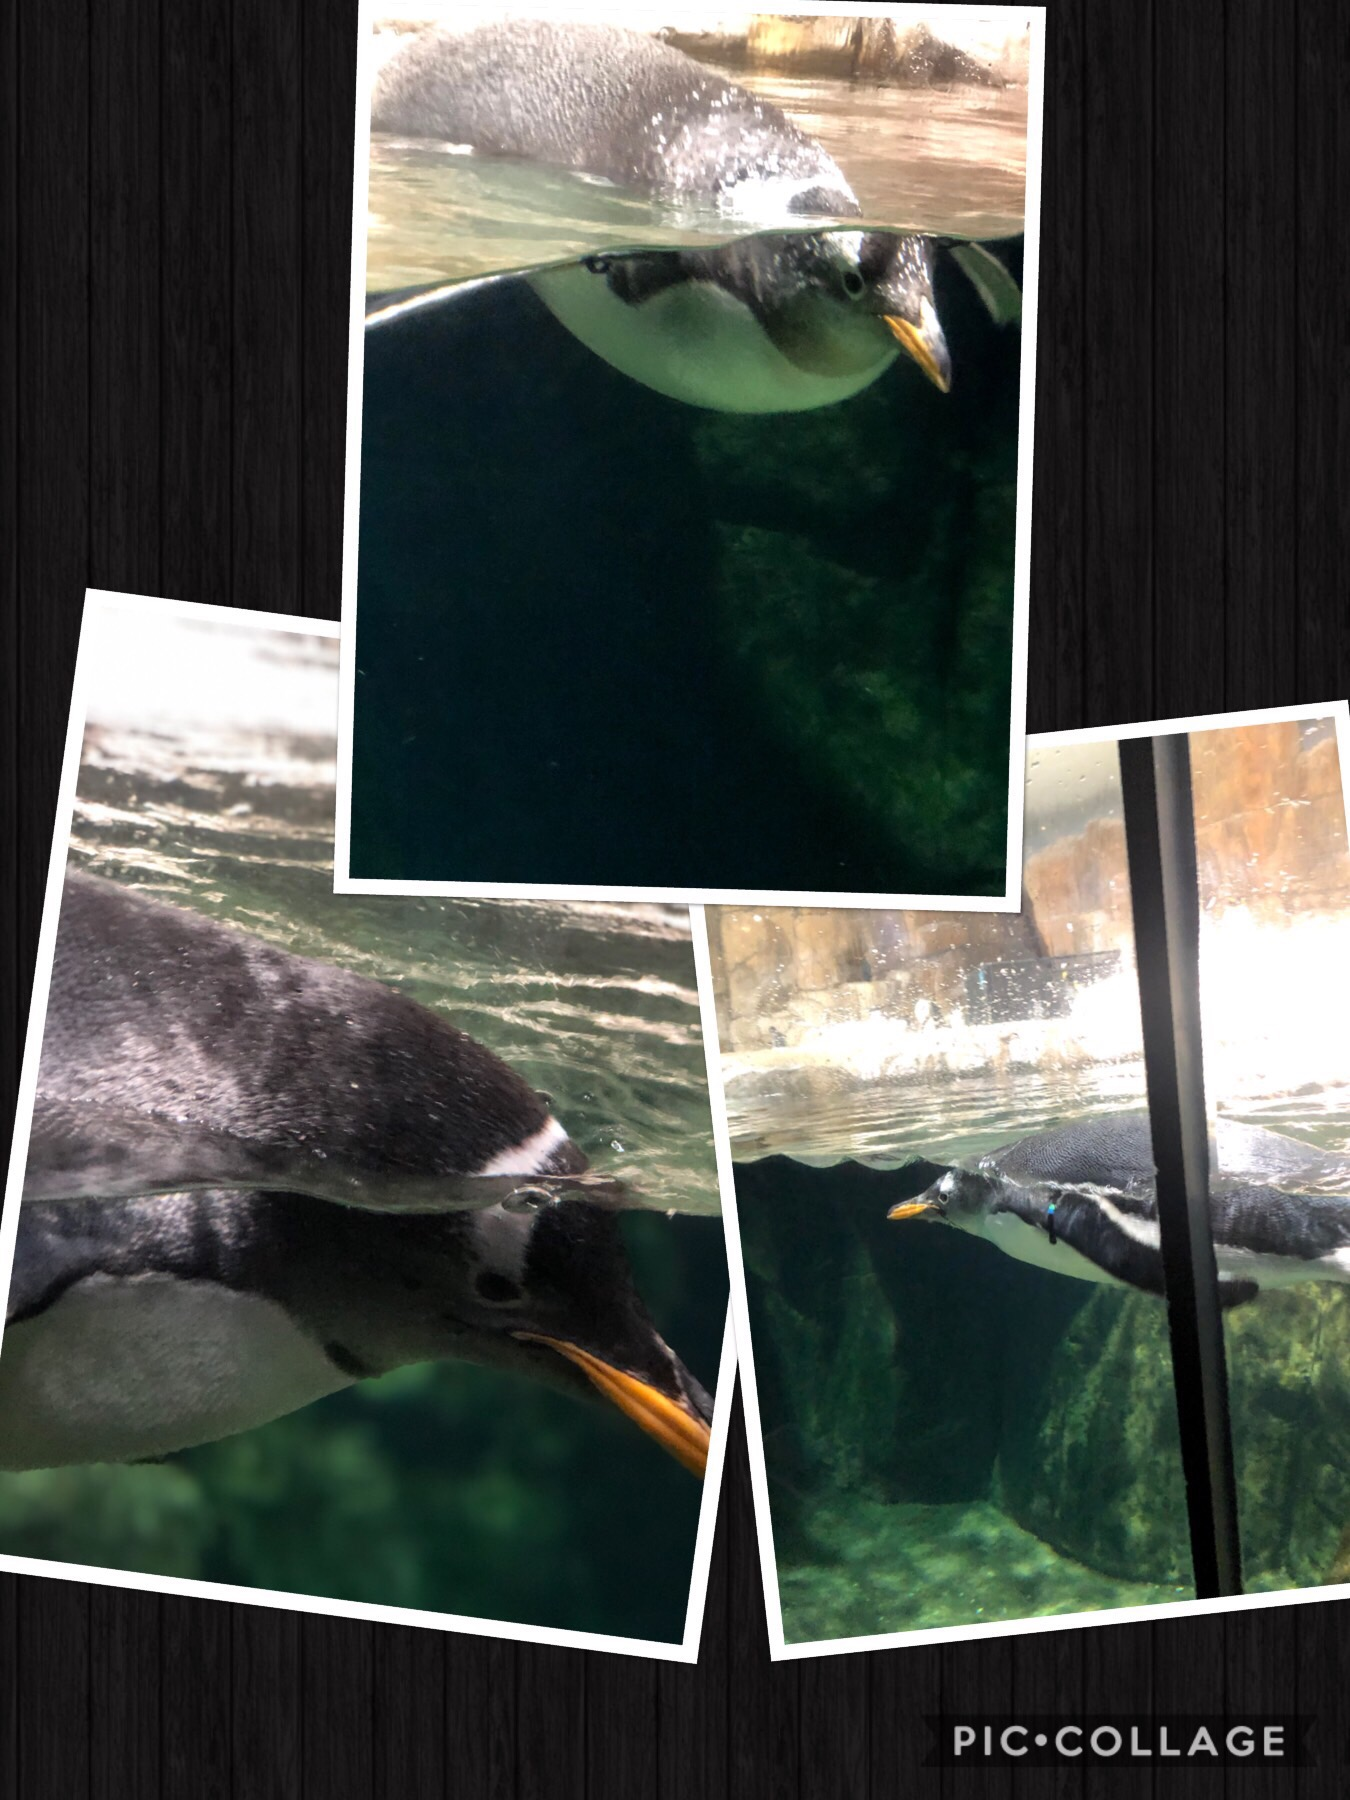 Collage of 3 photos of penguins swimming